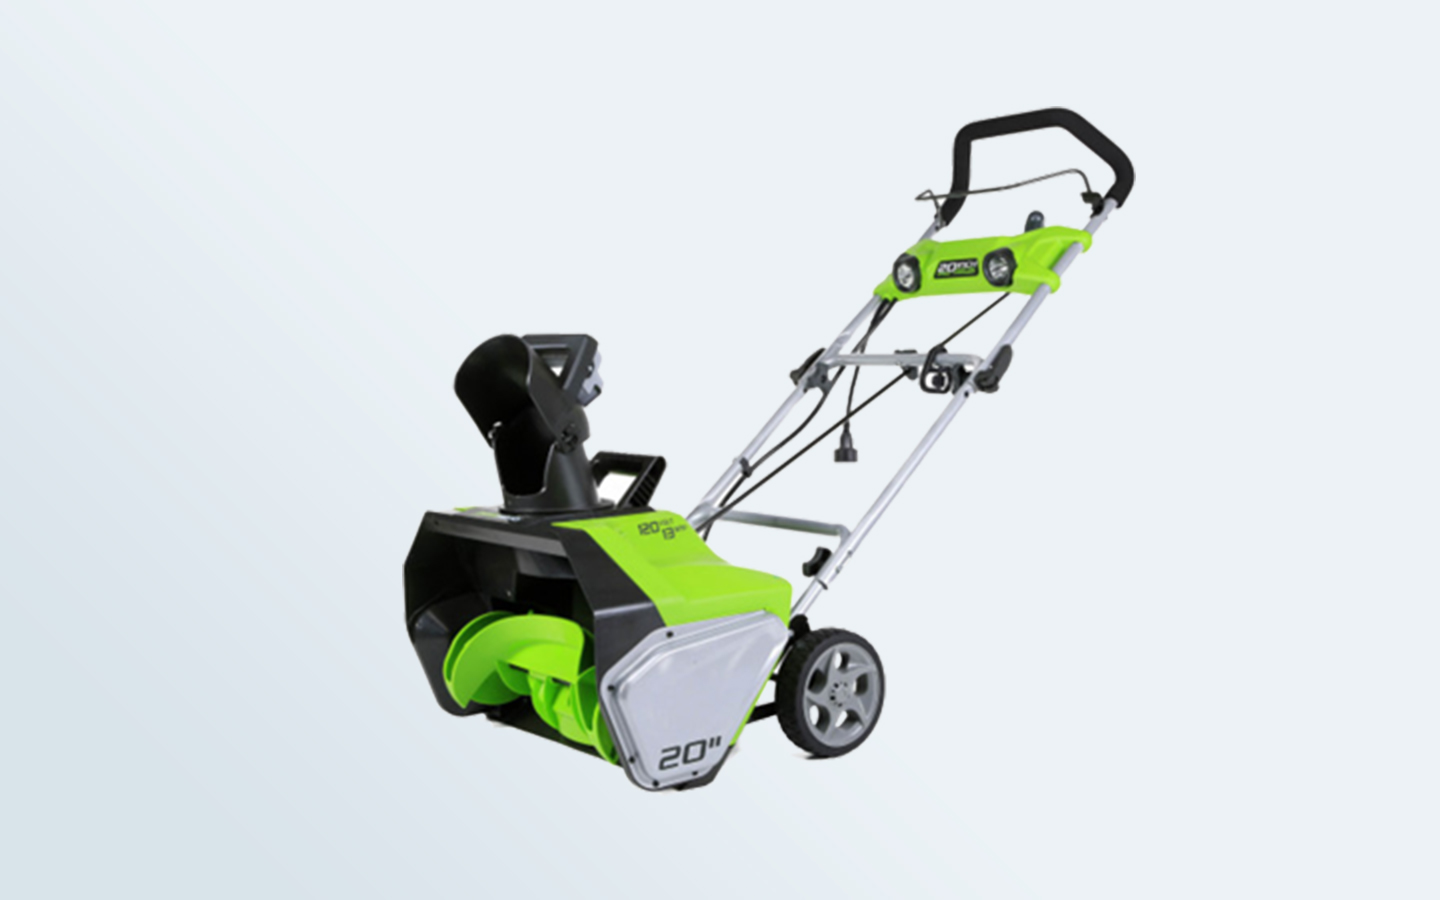 Best Snow Blowers 2019 - Gas and Electric Snowblower Reviews | Top